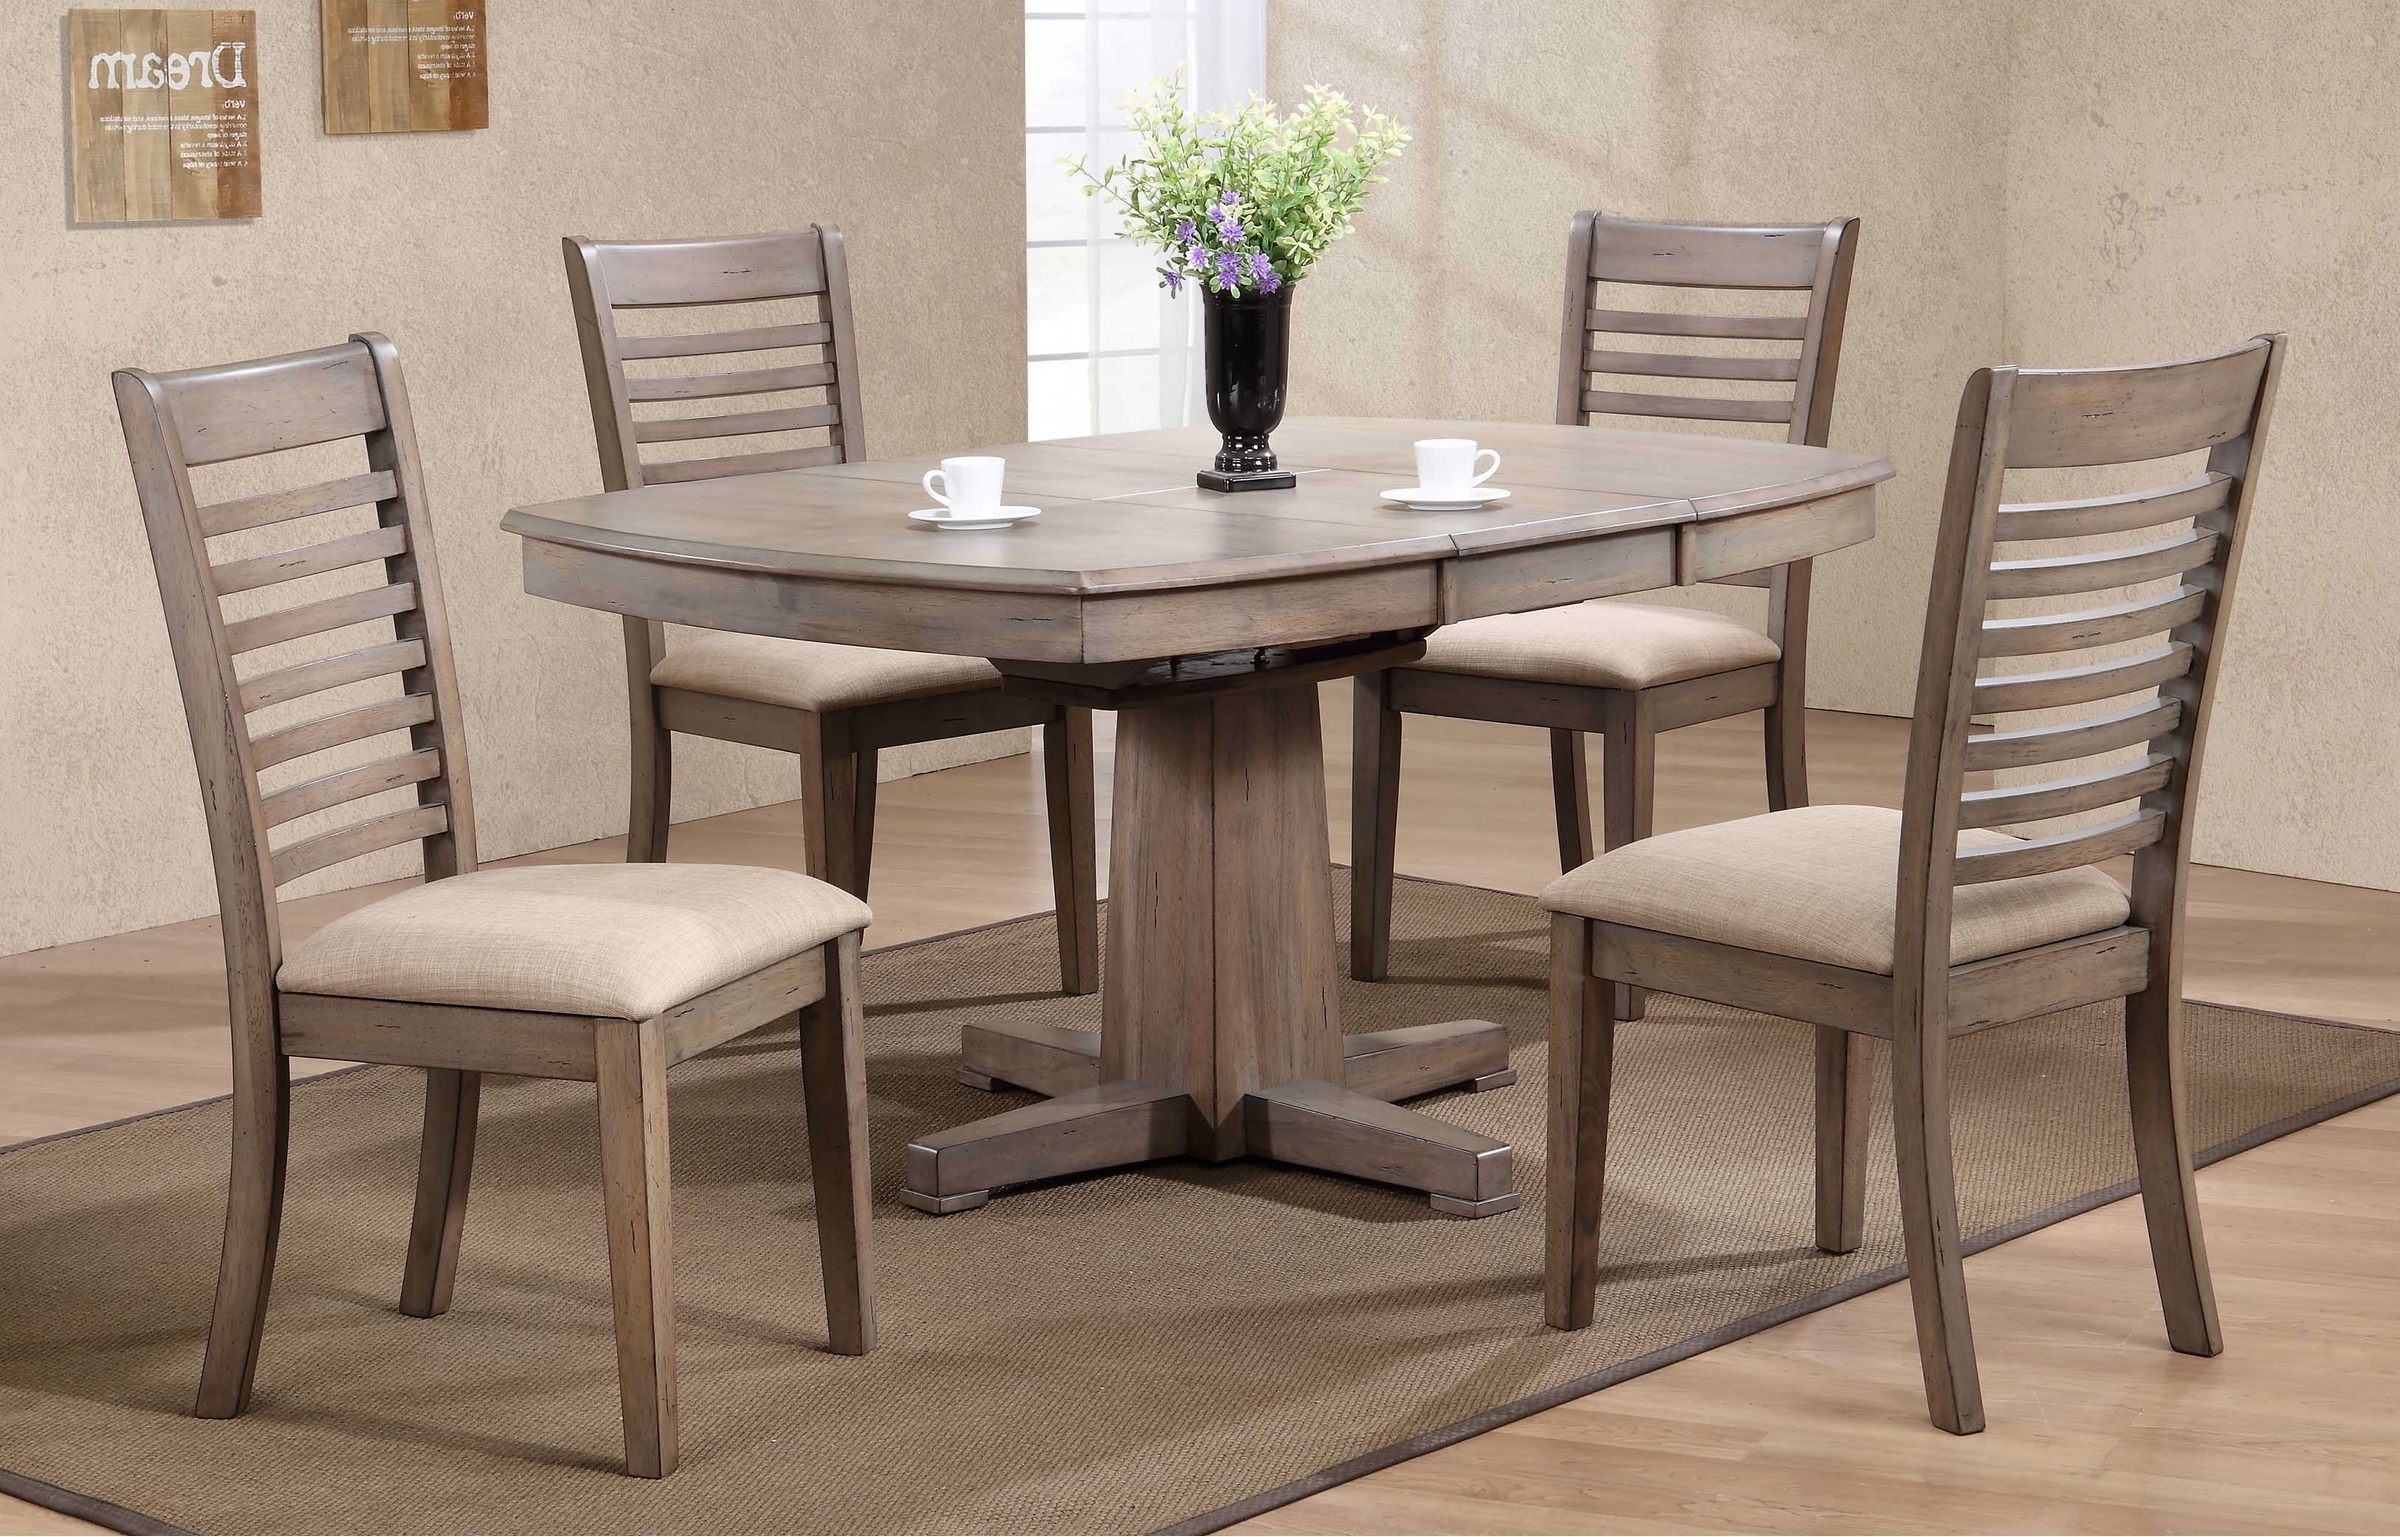 "Recent Dining Room Chairs Only In Ventura 57"" Pedestal Table & 4 Chairs In Grey Wash Finishwinners (View 16 of 25)"